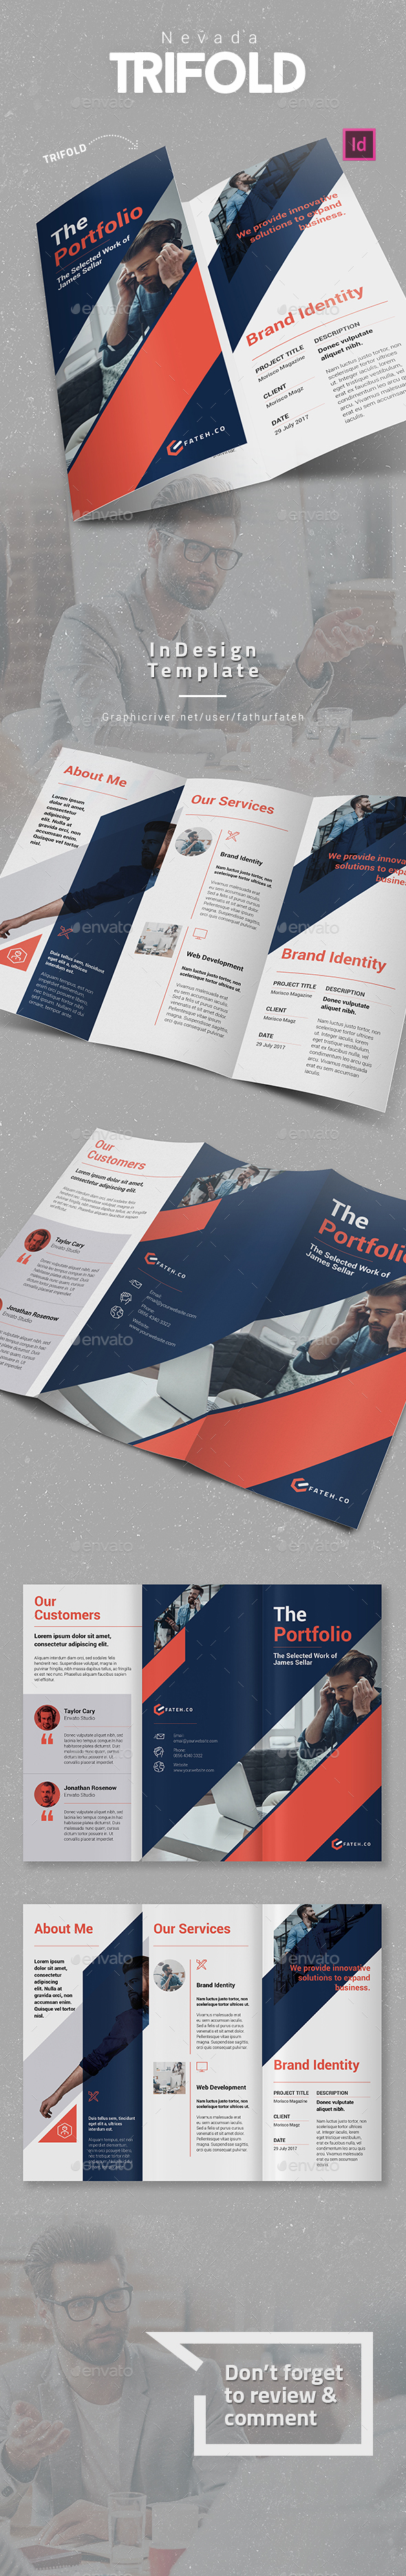 Nevada Trifold - Corporate Brochures